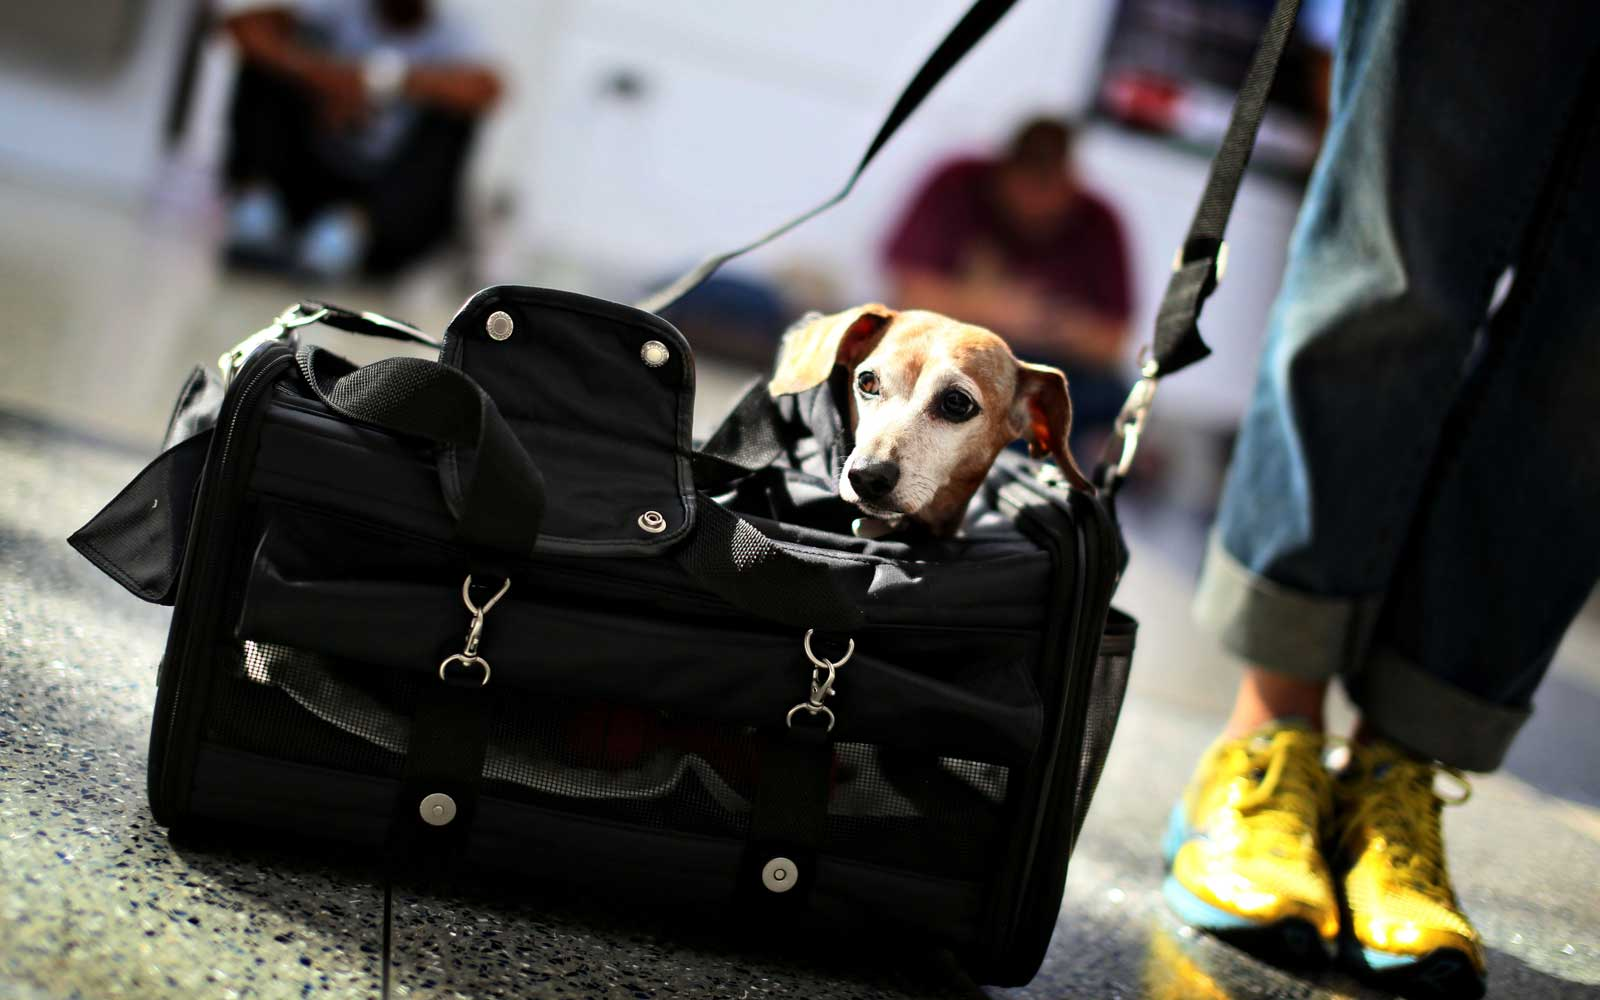 Dog in carry-on bag at airport